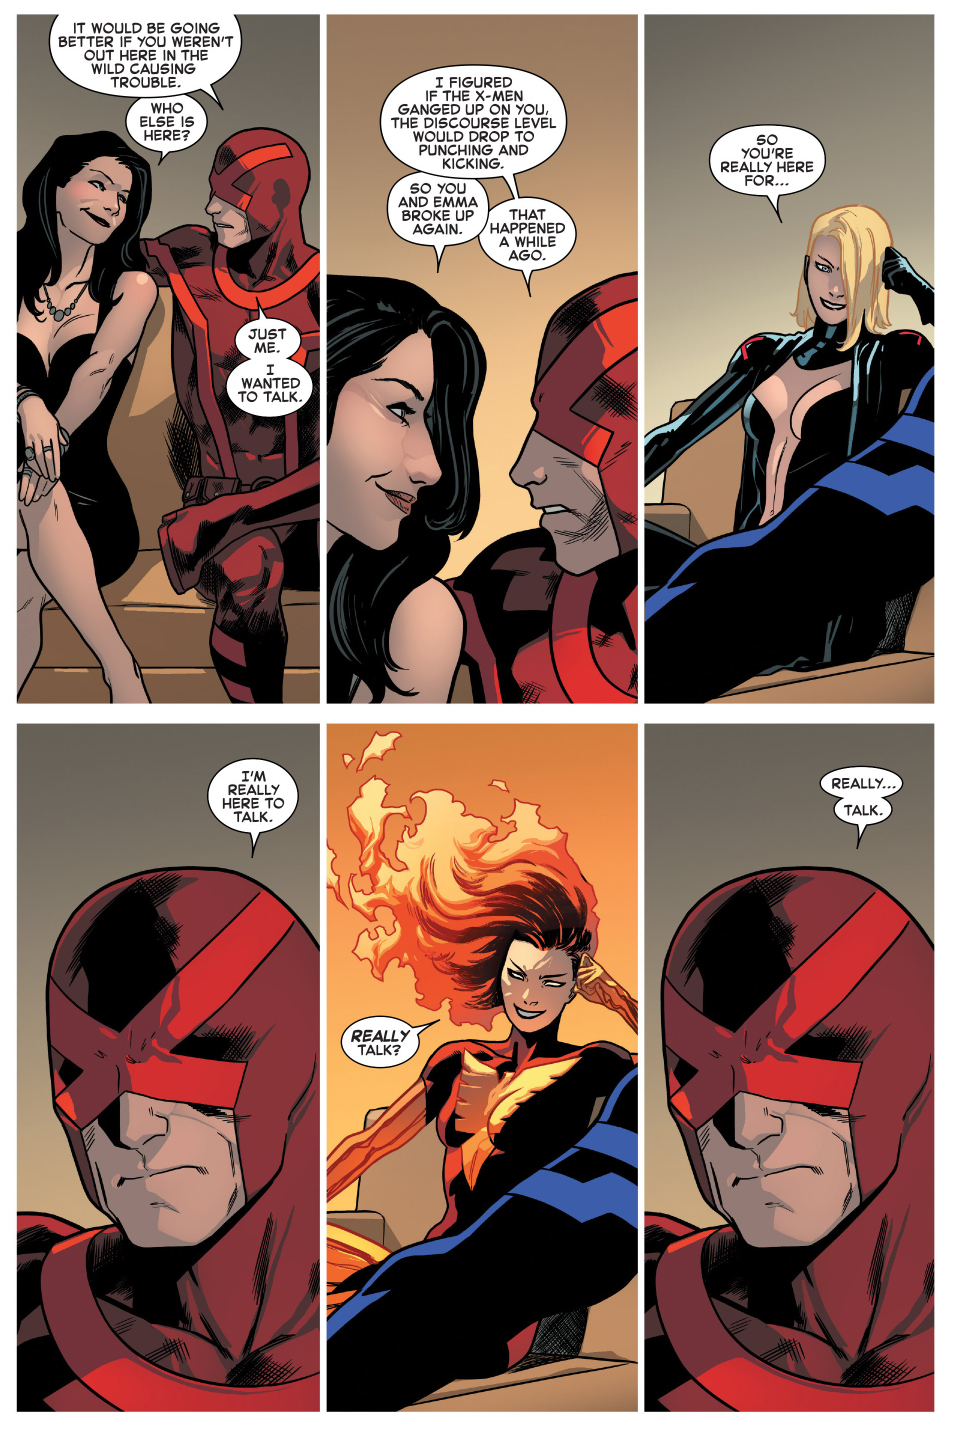 mystique tries to unsettle cyclops